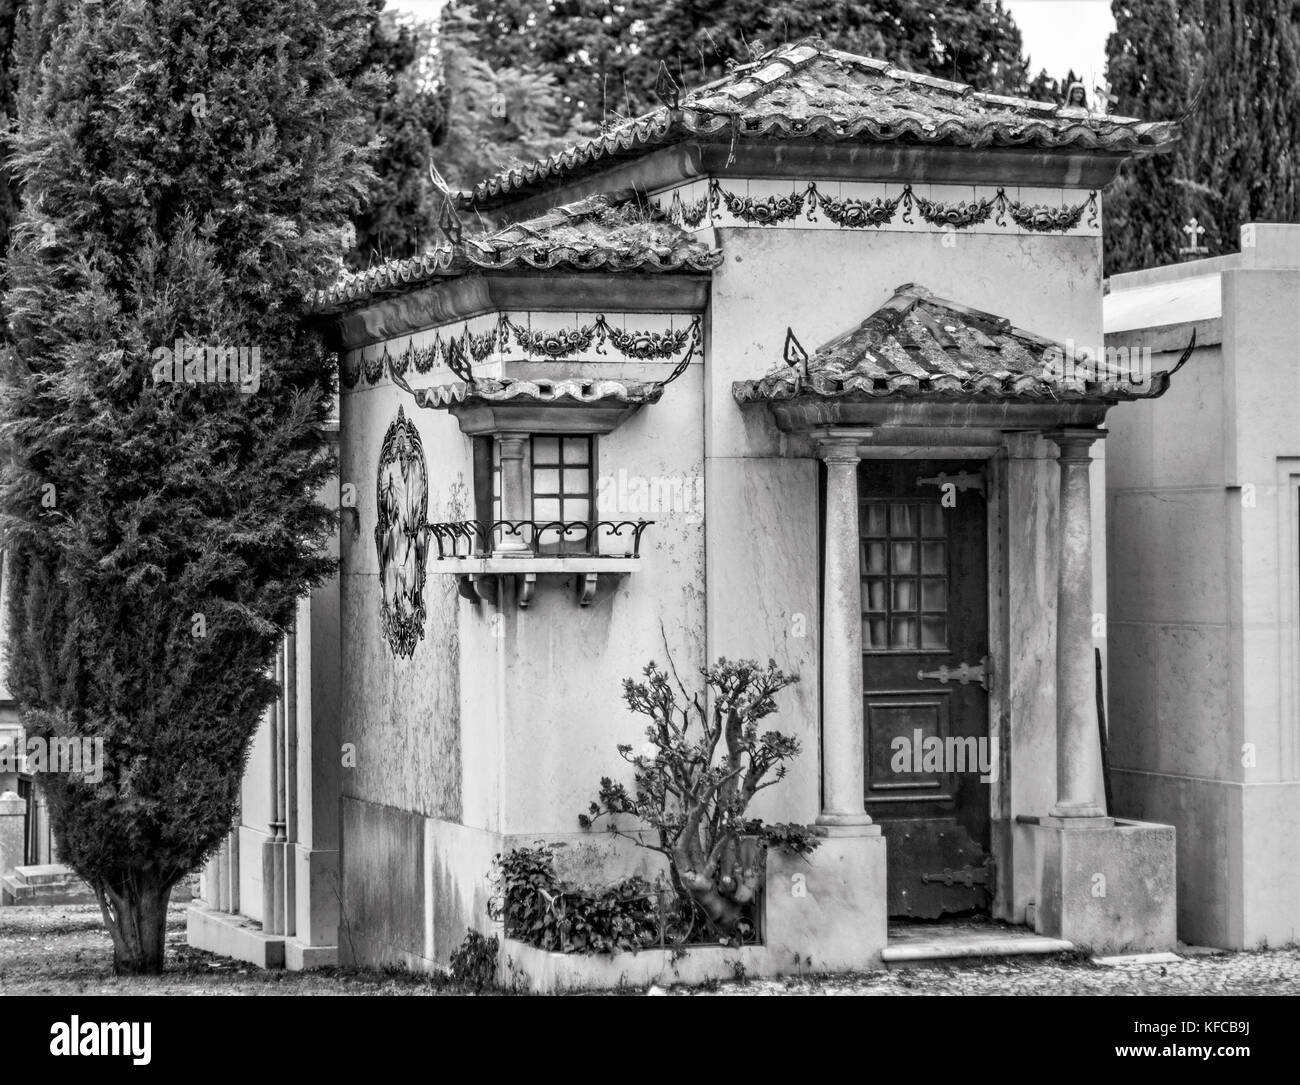 Tombs and tombstones in Prazeres Cemetery, Lisbon, Portugal. Prazeres is a former civil parish (freguesia) in the - Stock Image